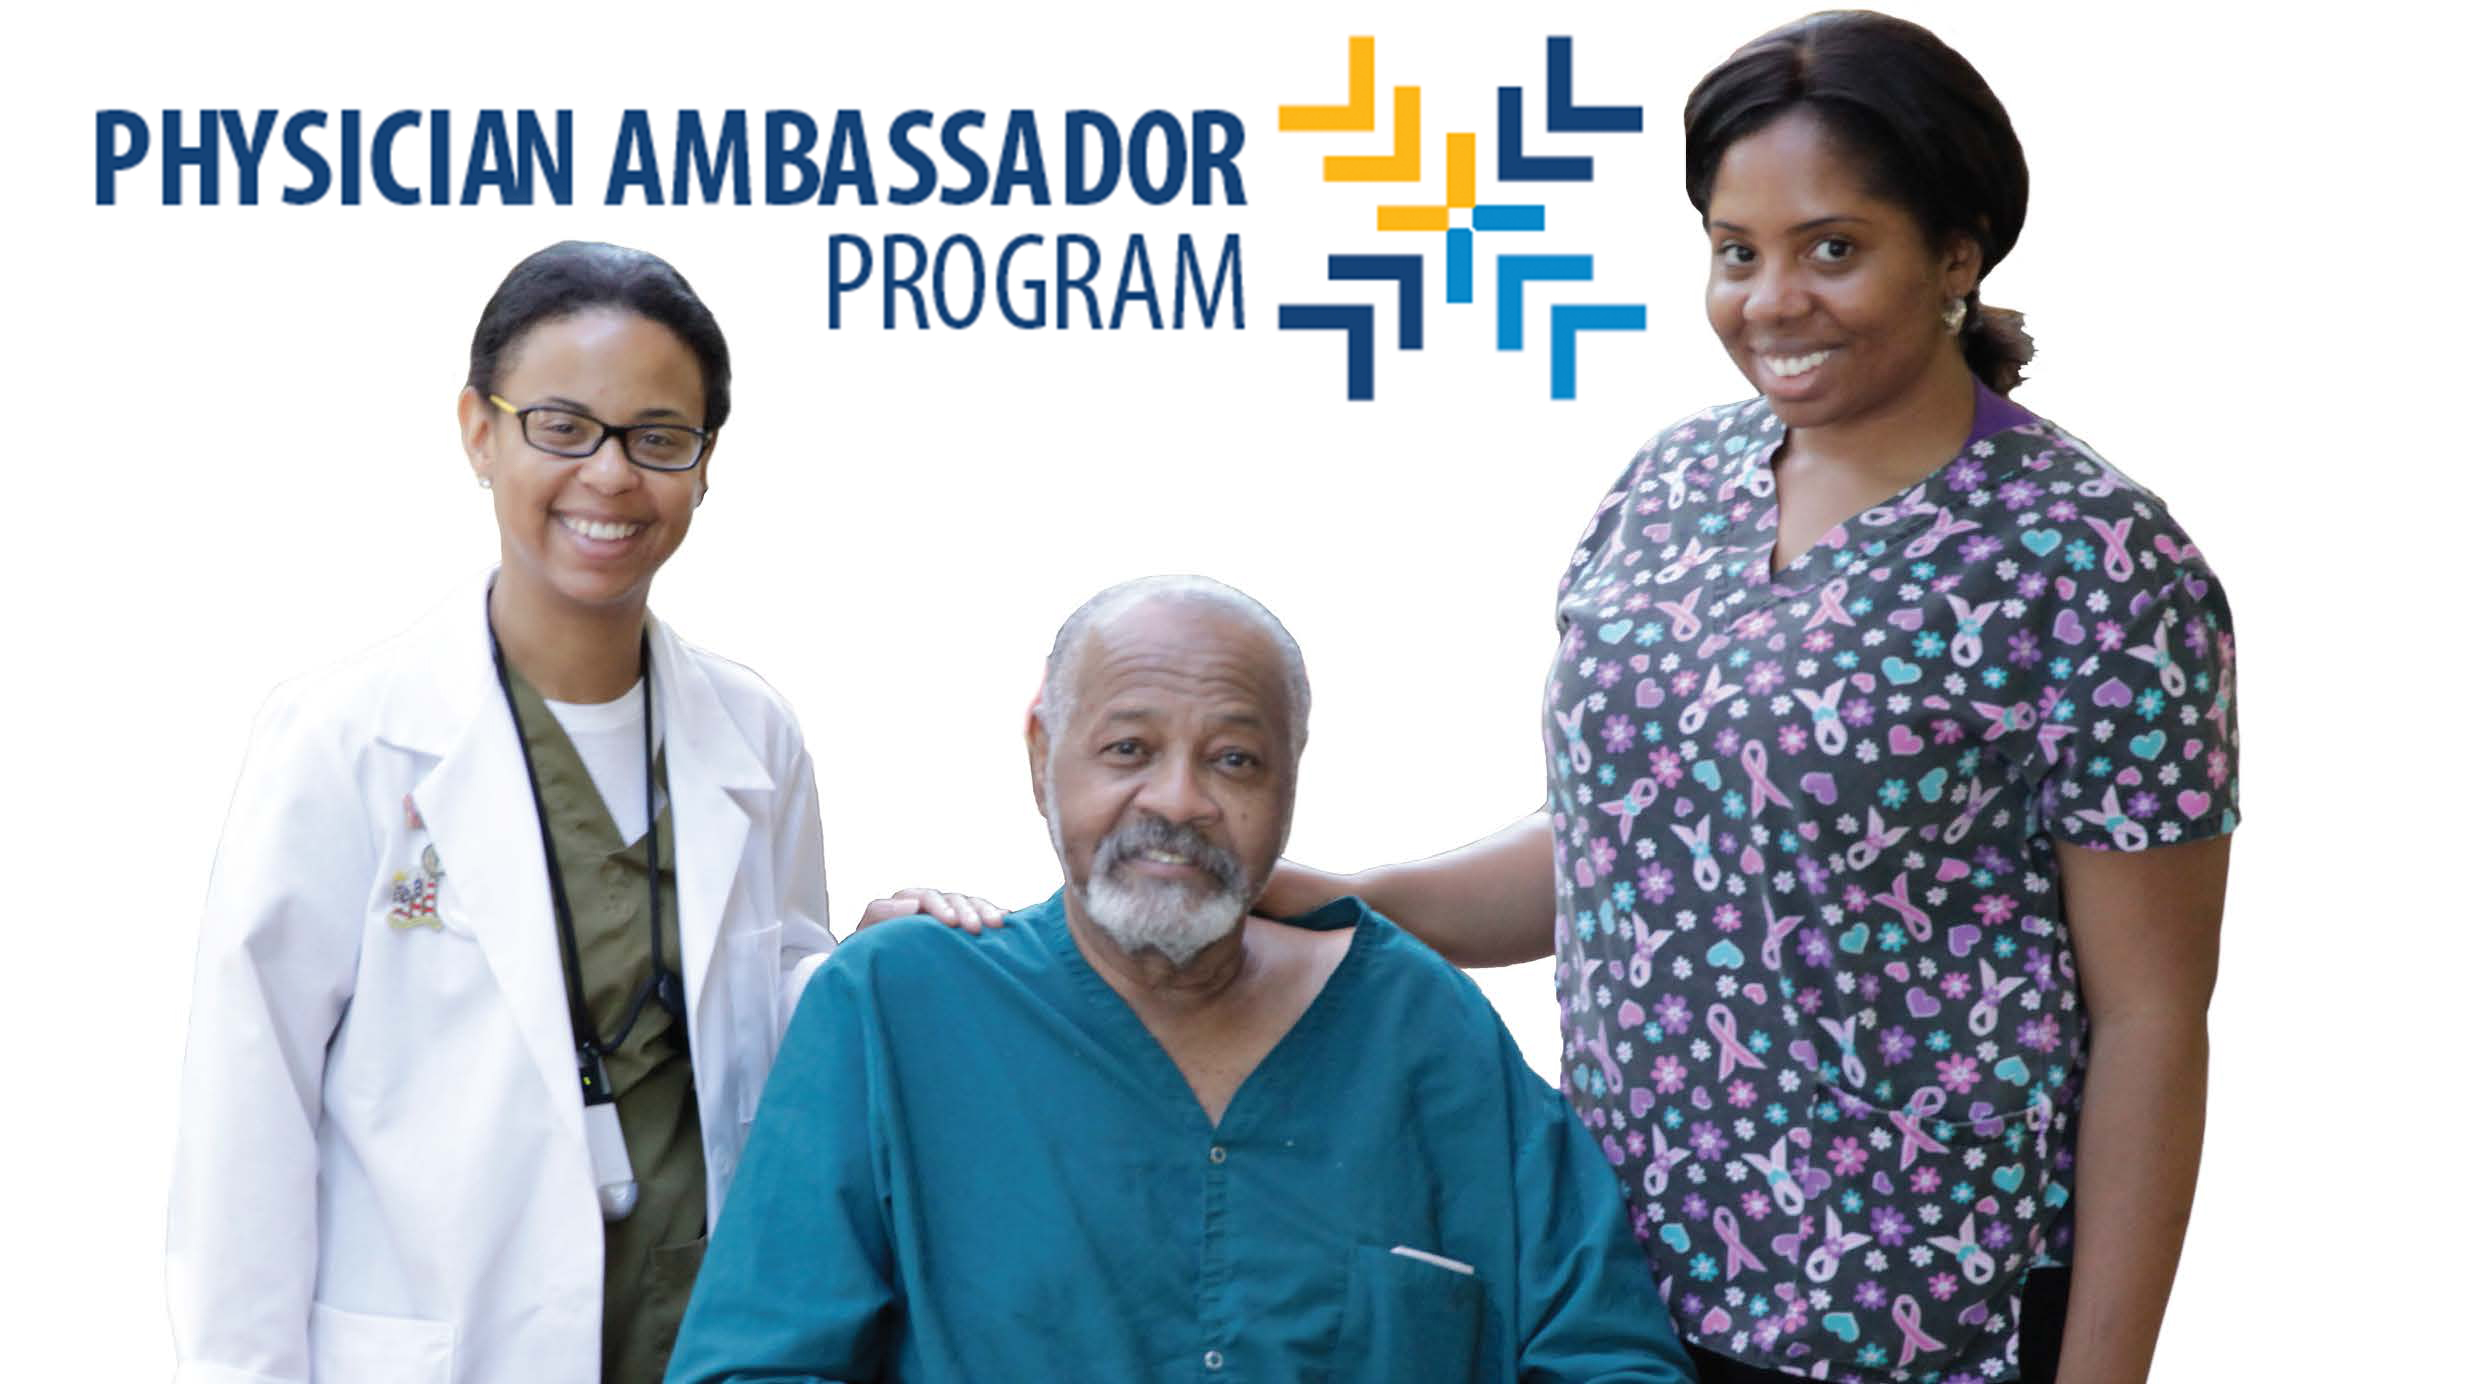 program logo with physician and nurse with patient